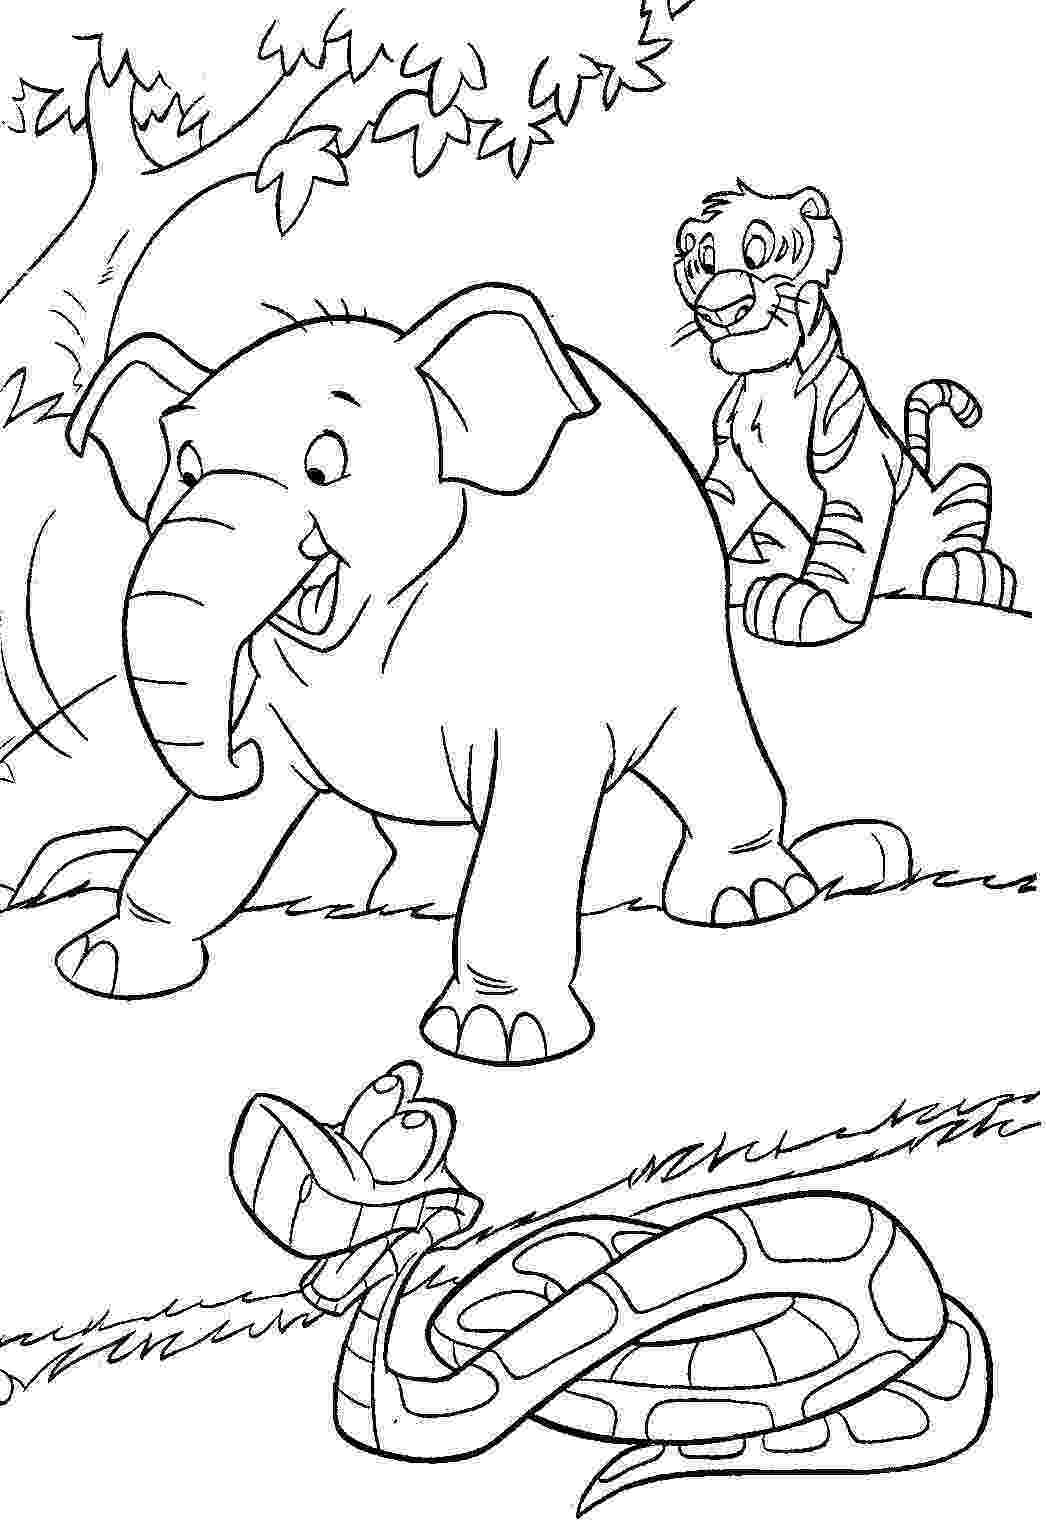 free coloring pages for teenagers free printable bambi coloring pages for kids for teenagers free coloring pages